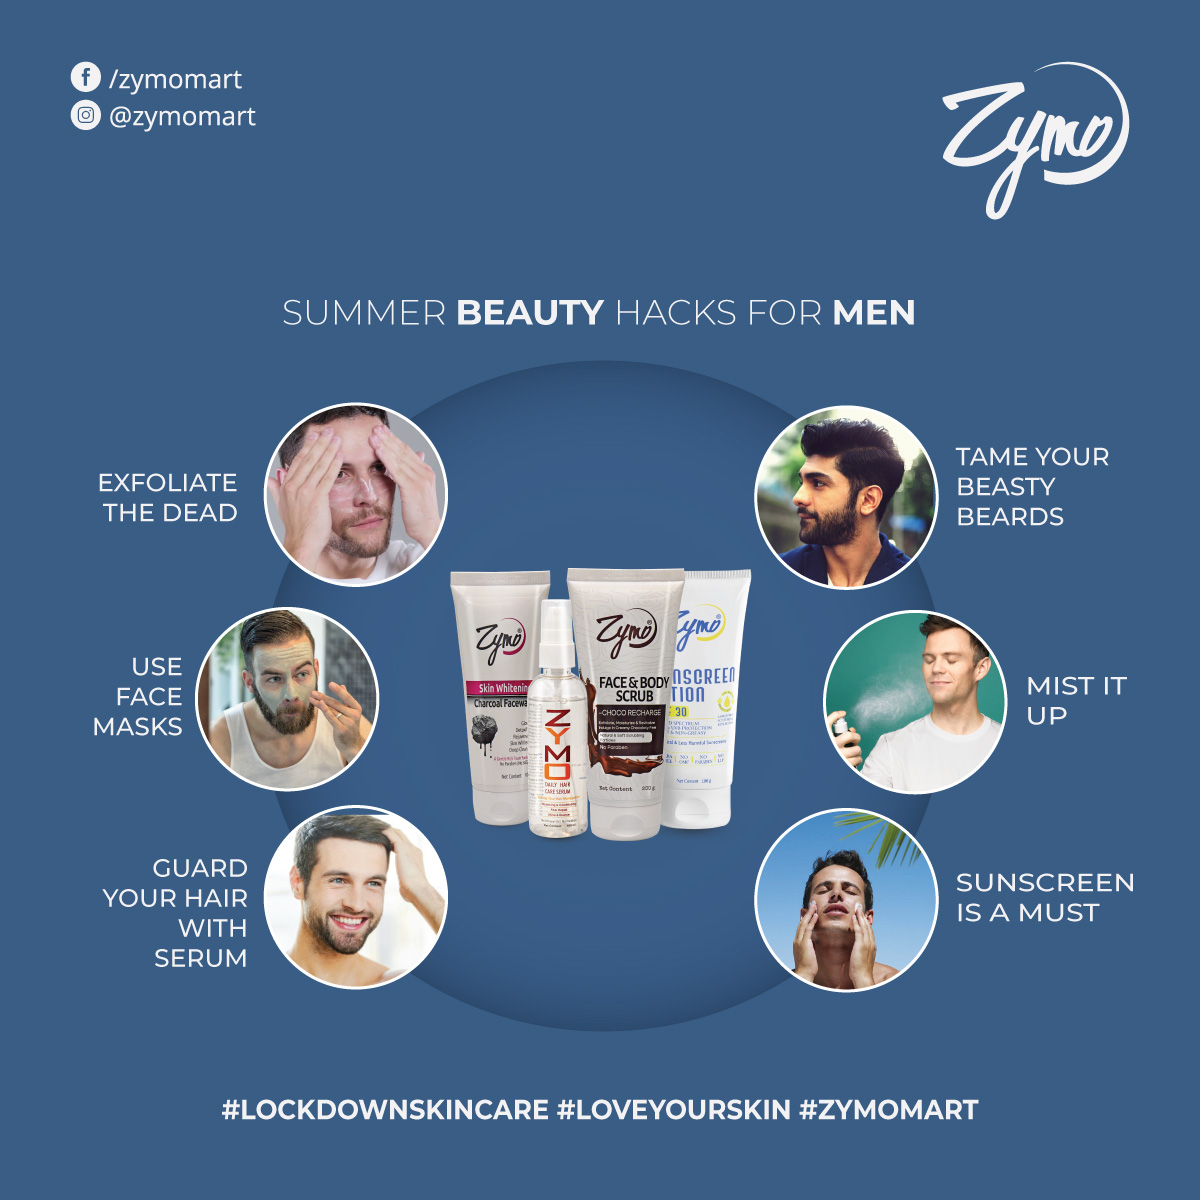 What makes a man look stunning? The answer lies within their SKIN and HAIR.  Shine this summer with these skincare tips for MEN.  #summertips #beautytipsformen #summertipsformen #beautyhacks #menskincare #facescrub #facemask #loveforsunscreen #facemist #lockdownskincare #zymomartpic.twitter.com/iwdzB9TGOS